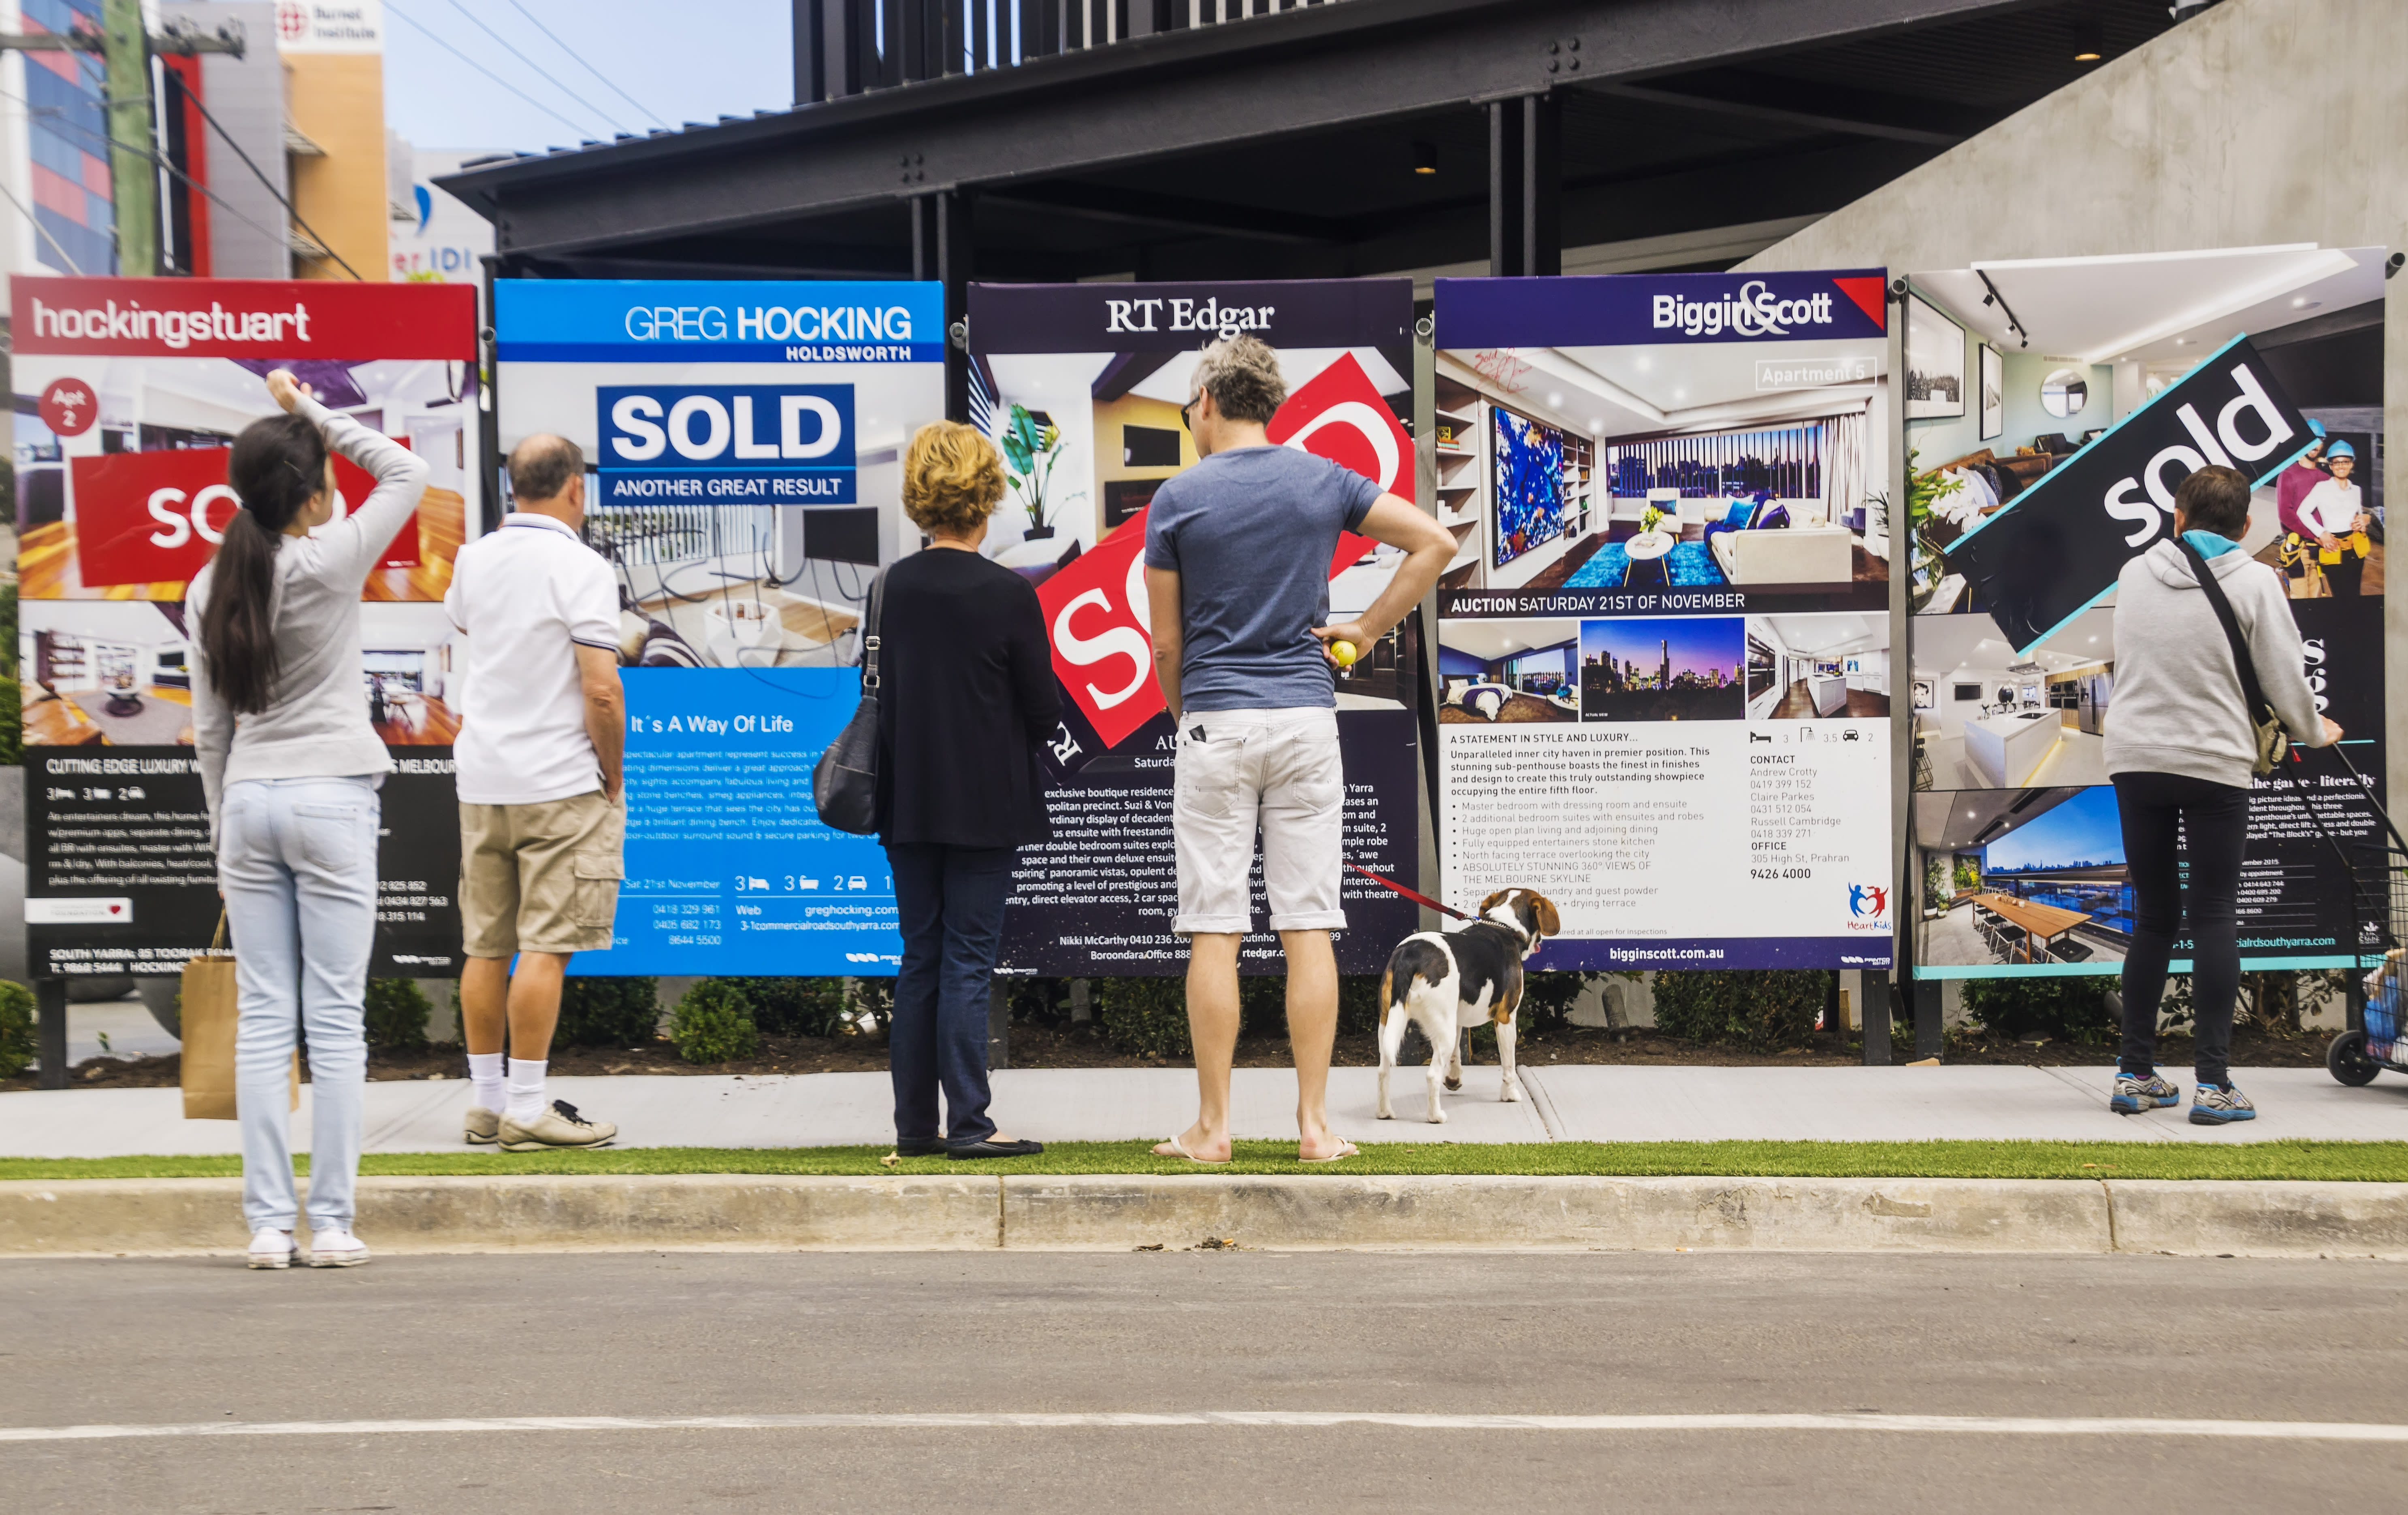 Perth property prices are rebounding after Covid-19